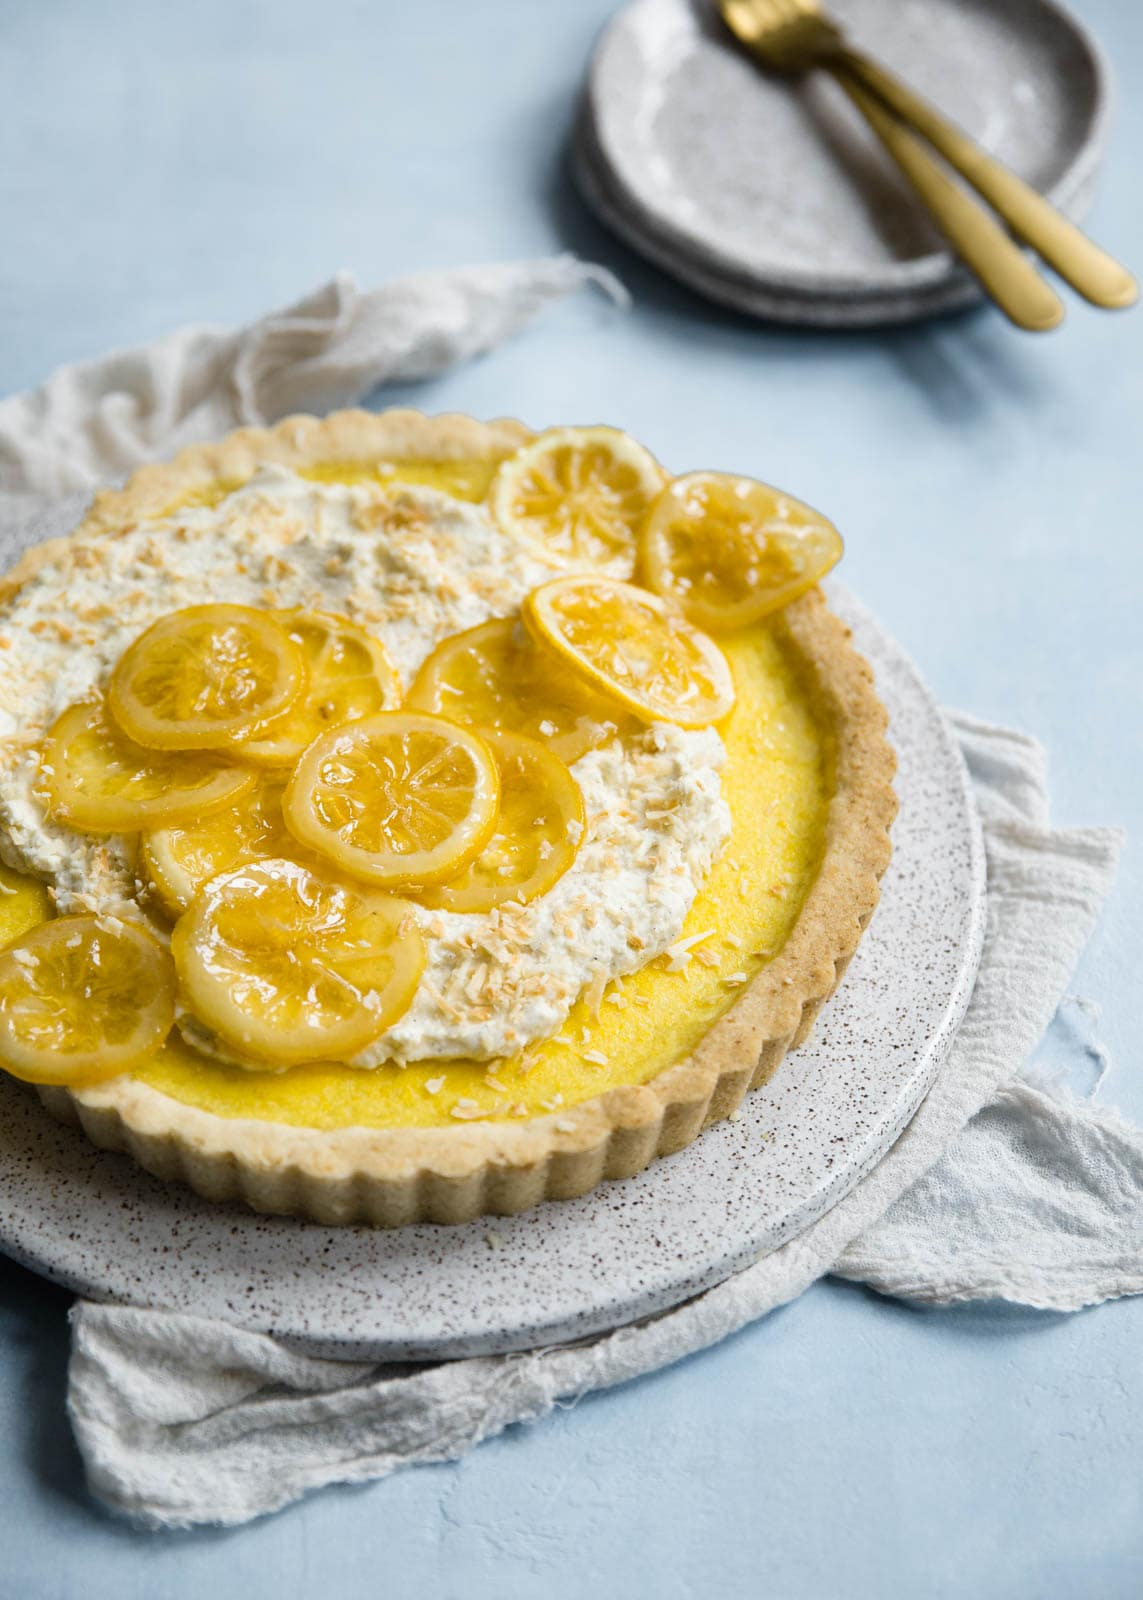 Lemon Coconut Tart with Whipped Vanilla Bean Crème Fraîche and candied lemons